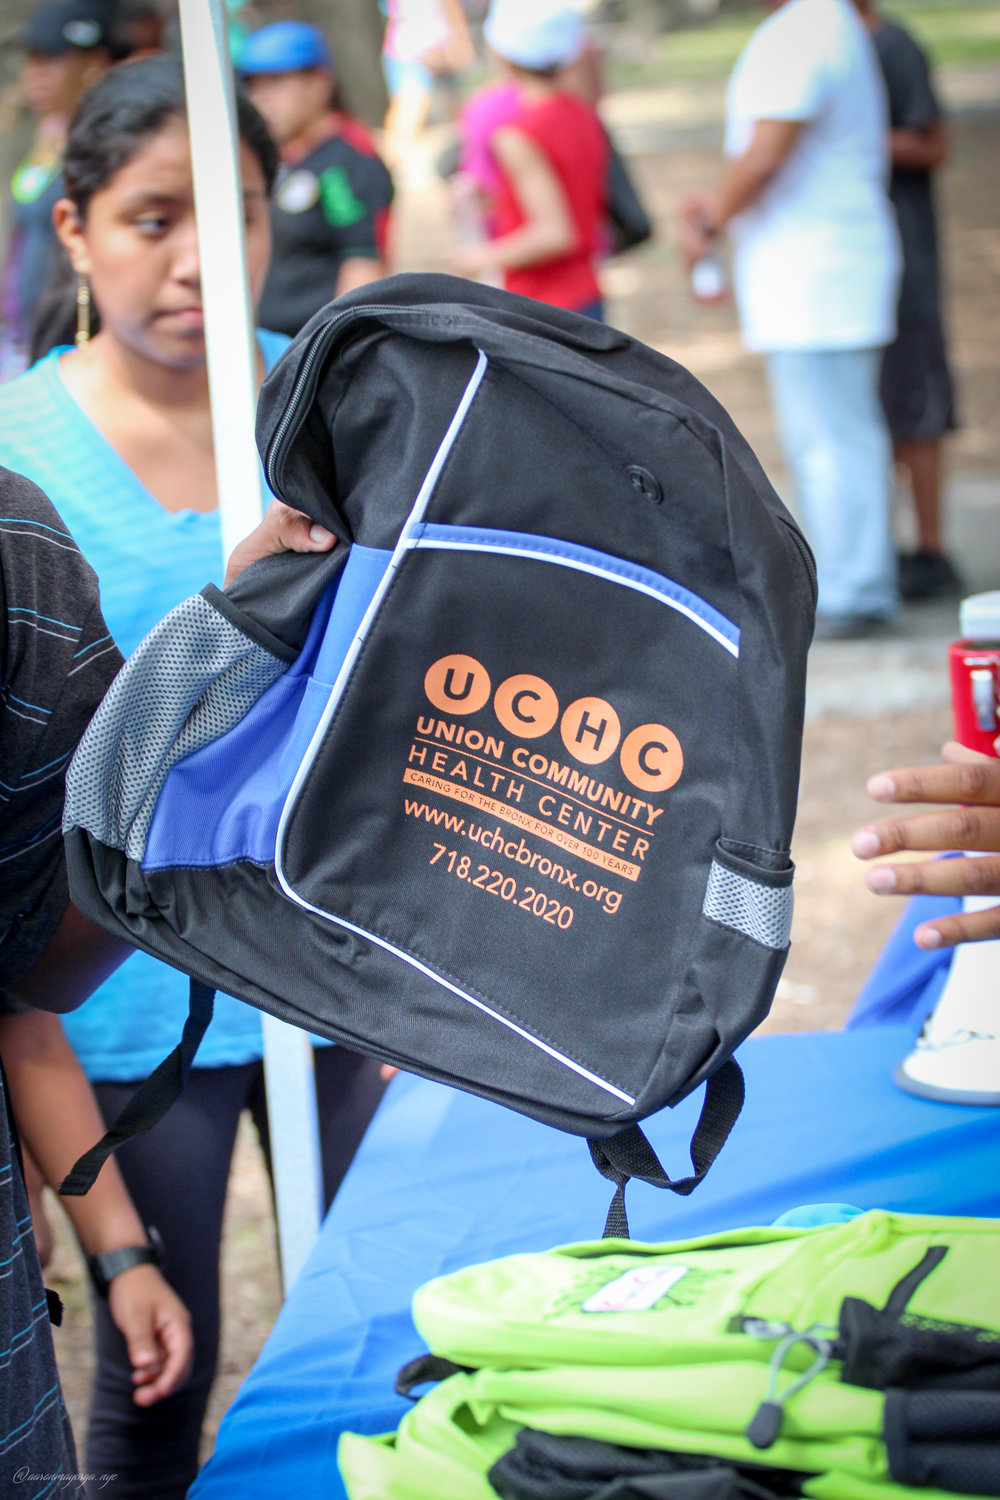 St James Backpack Event (39 of 80).jpg